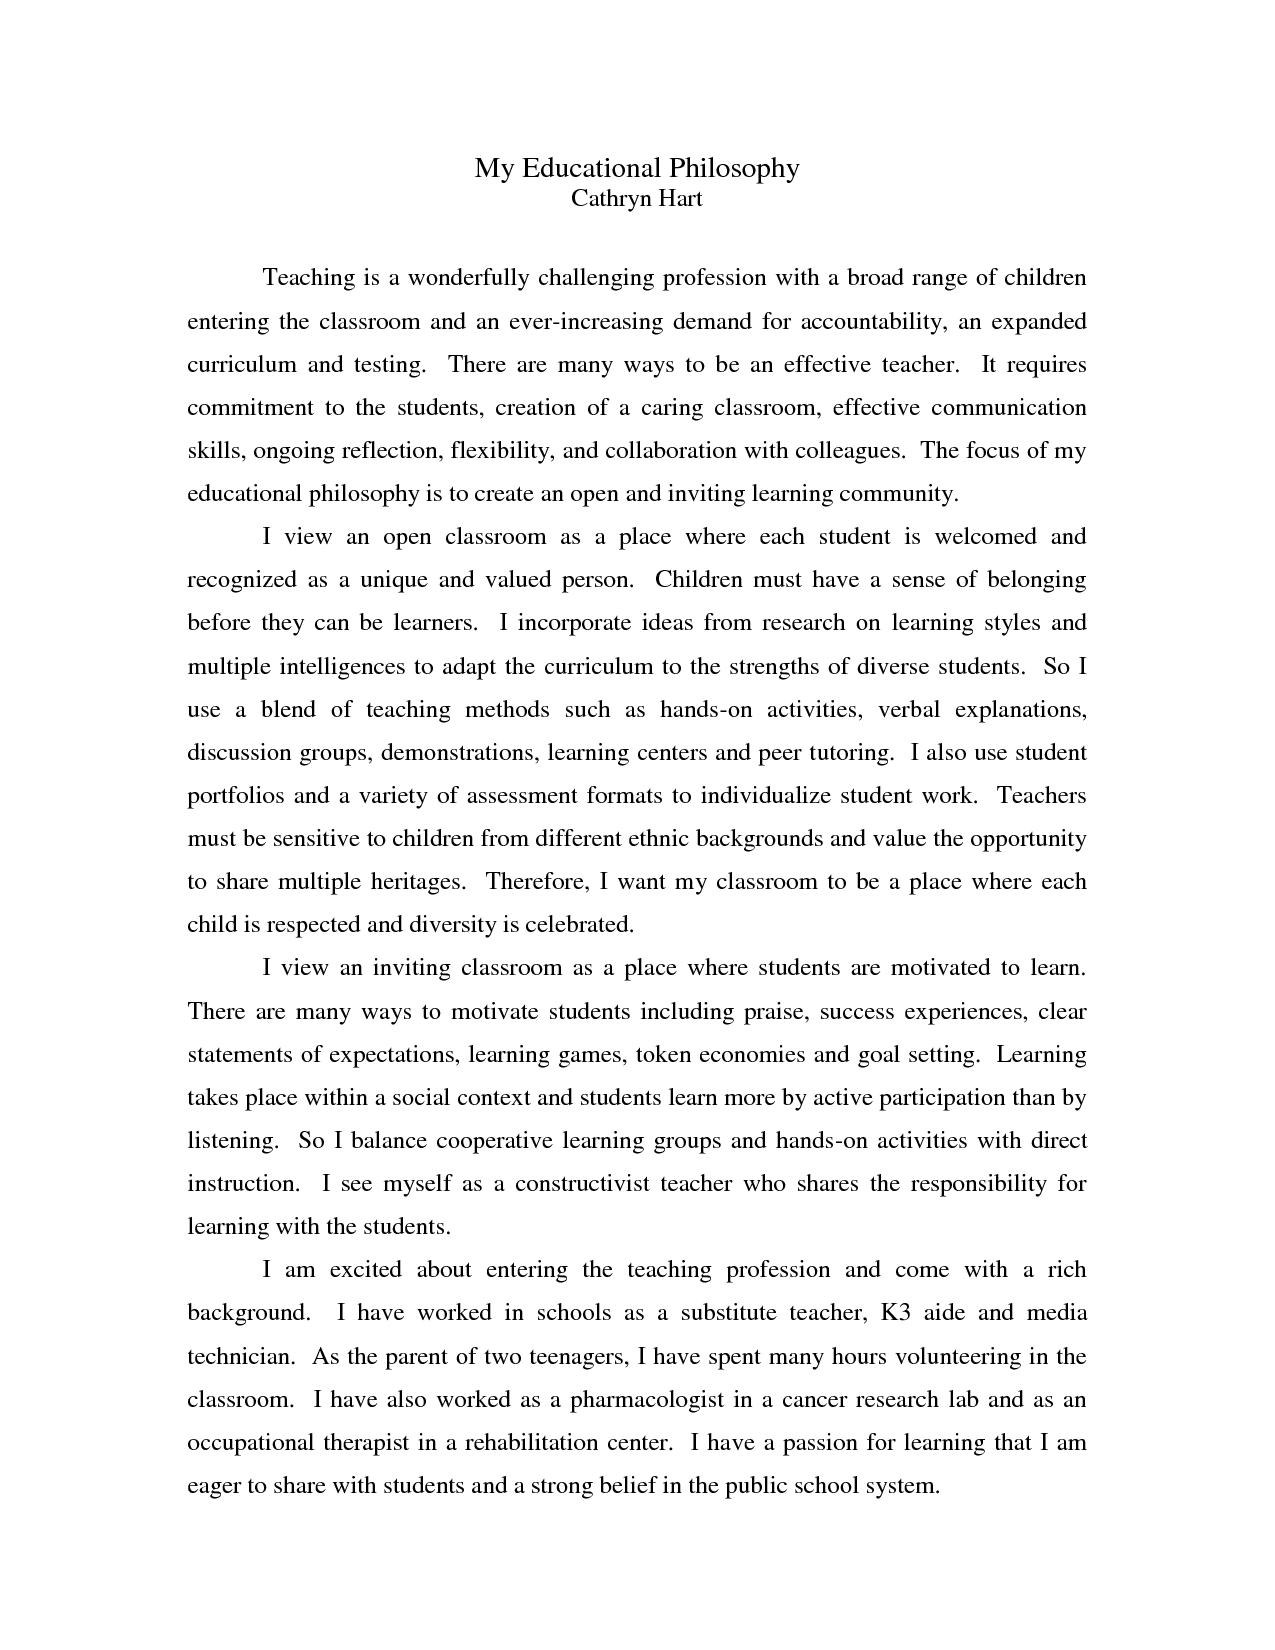 philosophy paper title page example cda teaching philosophy paper title page example cda teaching philosophy teaching and title page example